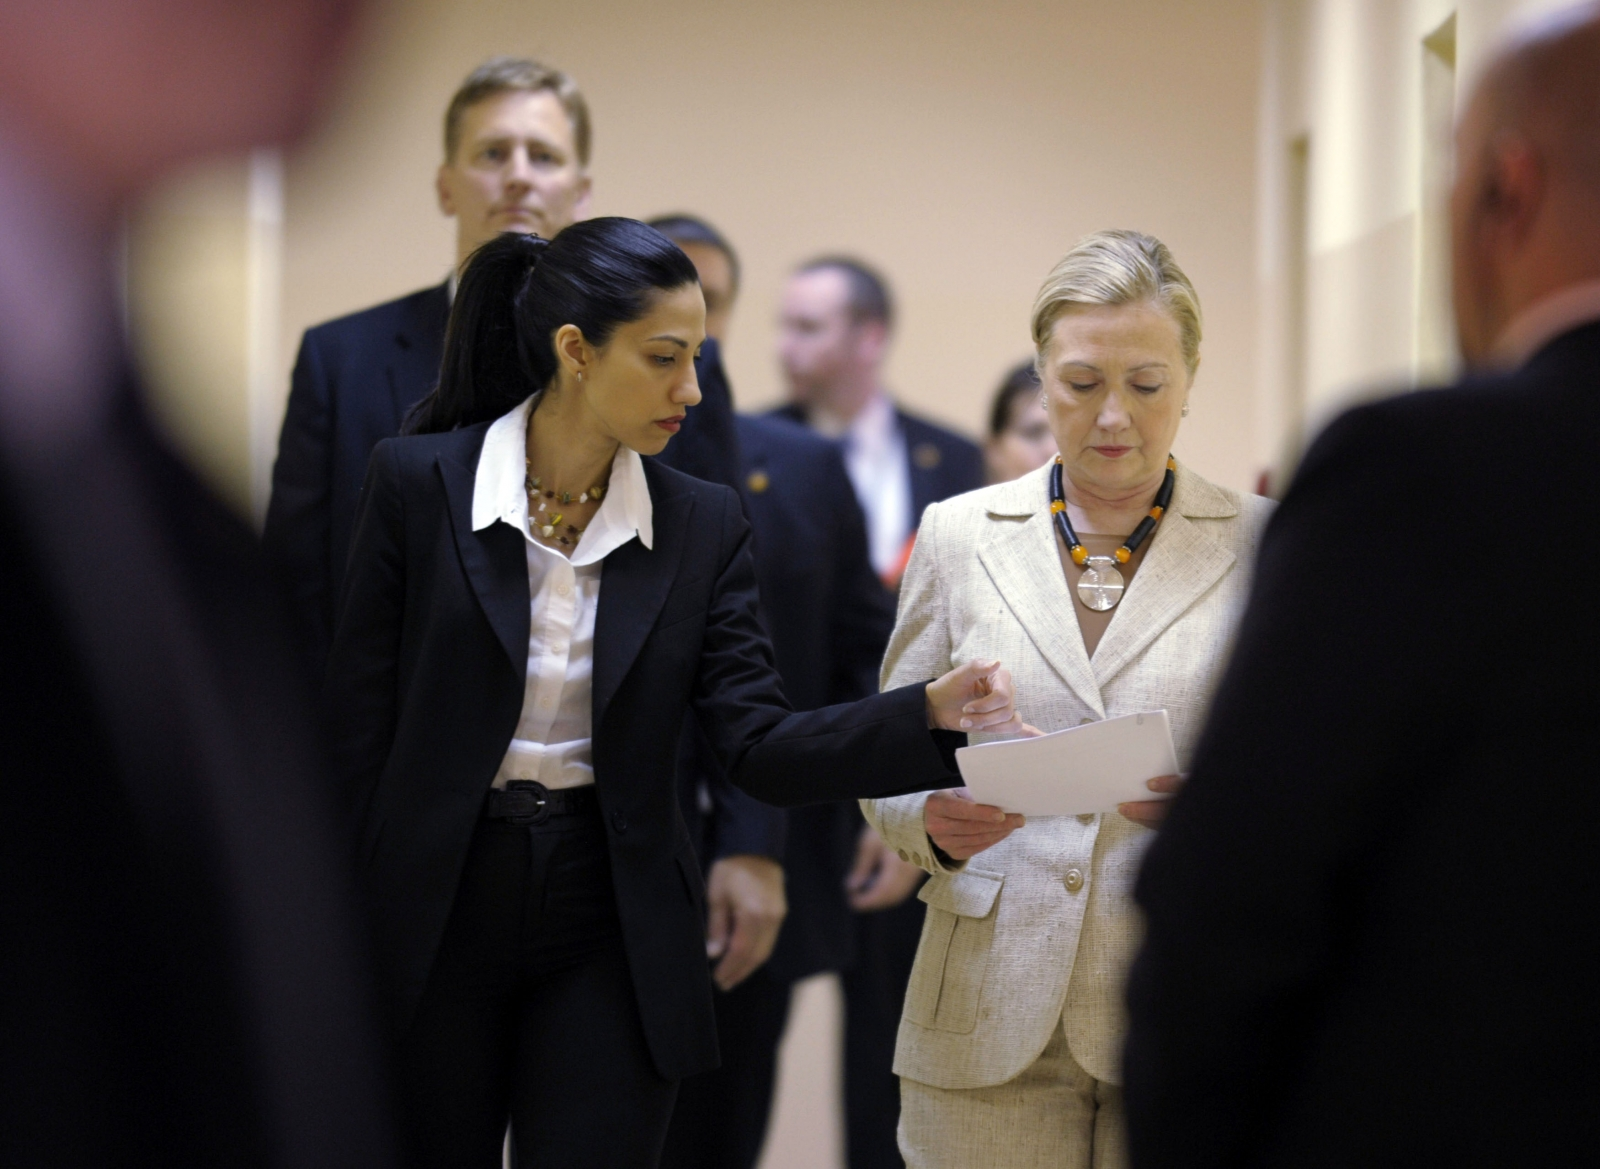 Hillary Clinton aide Huma Abedin seeks to review the FBI's Clinton emails search warrant